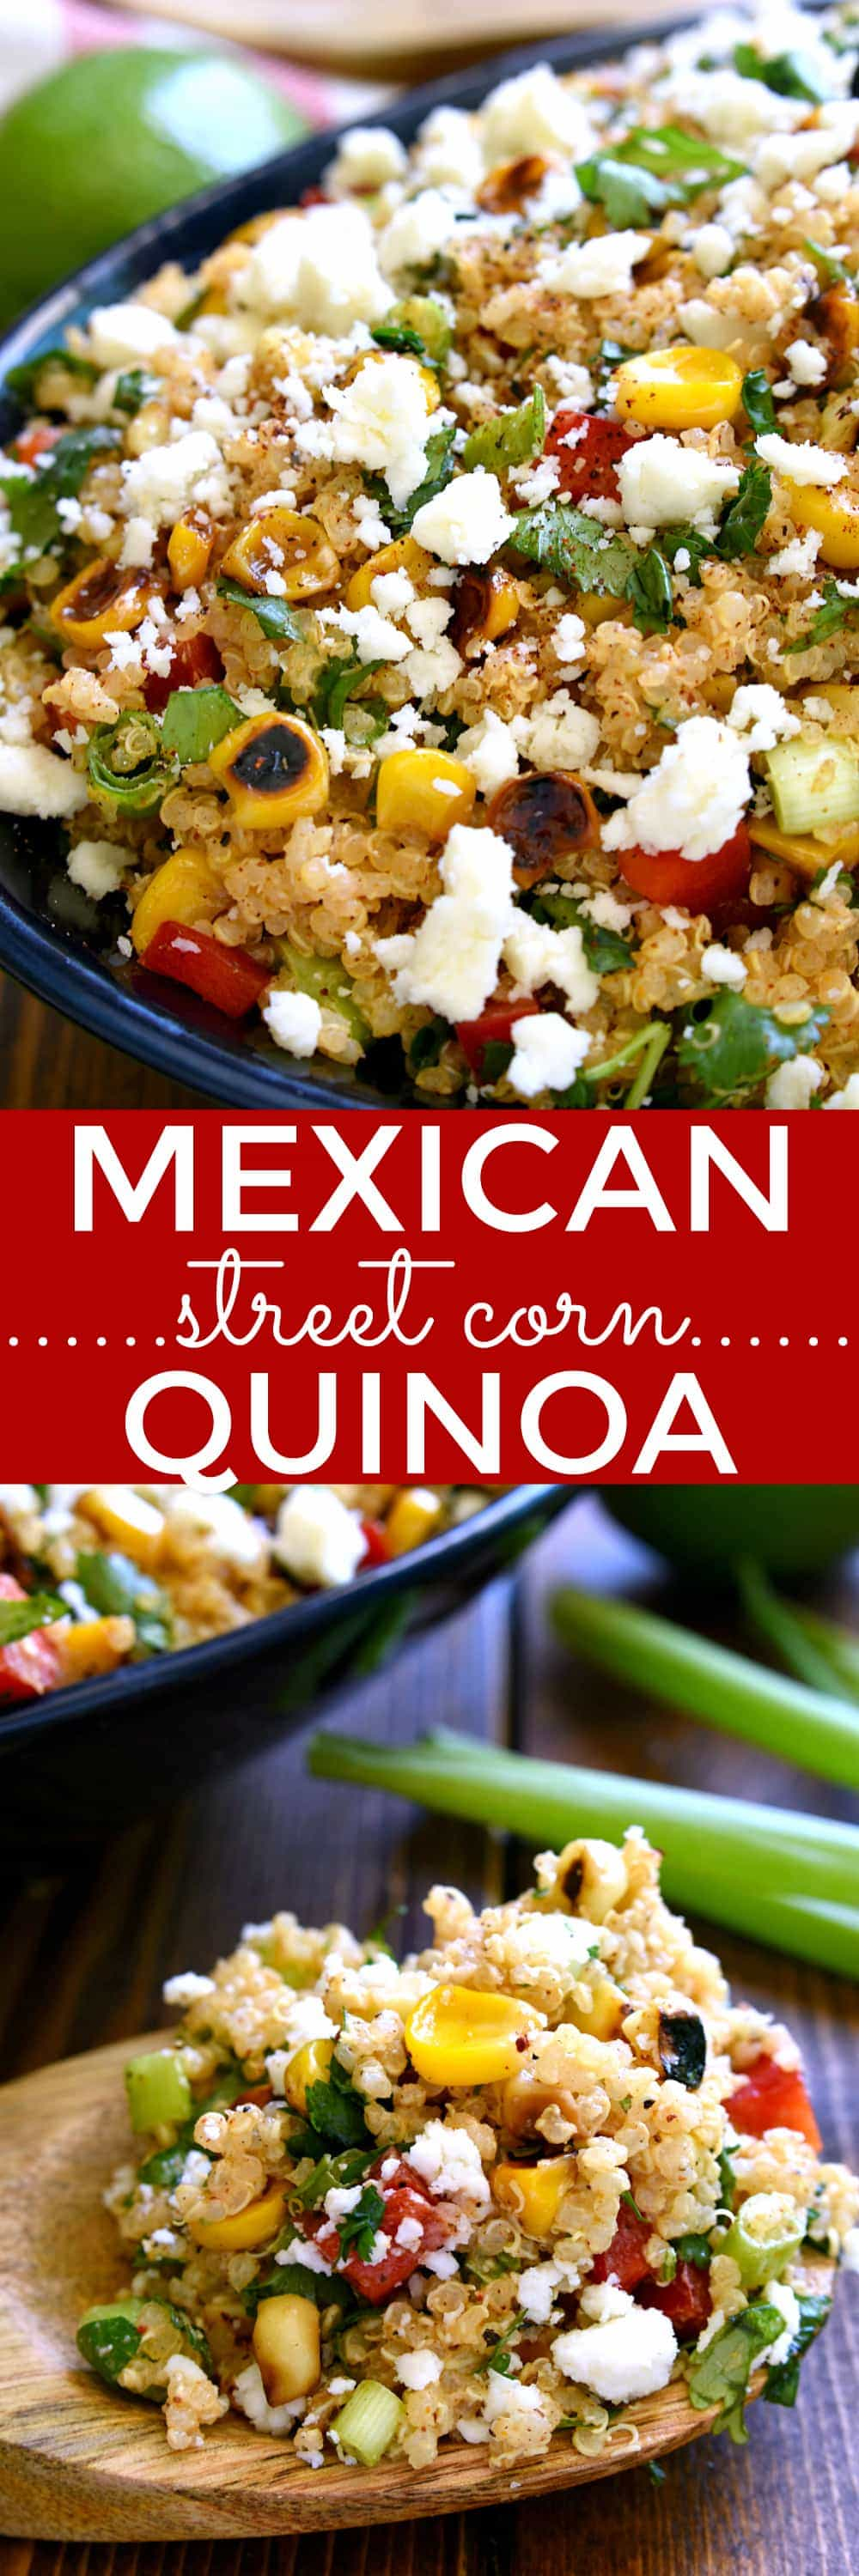 Looking to mix up your salad routine? This Mexican Street Corn Quinoa is for you! Loaded with all the delicious flavors of Mexican Street Corn, this quinoa salad is fresh, flavorful, and perfect for summer!